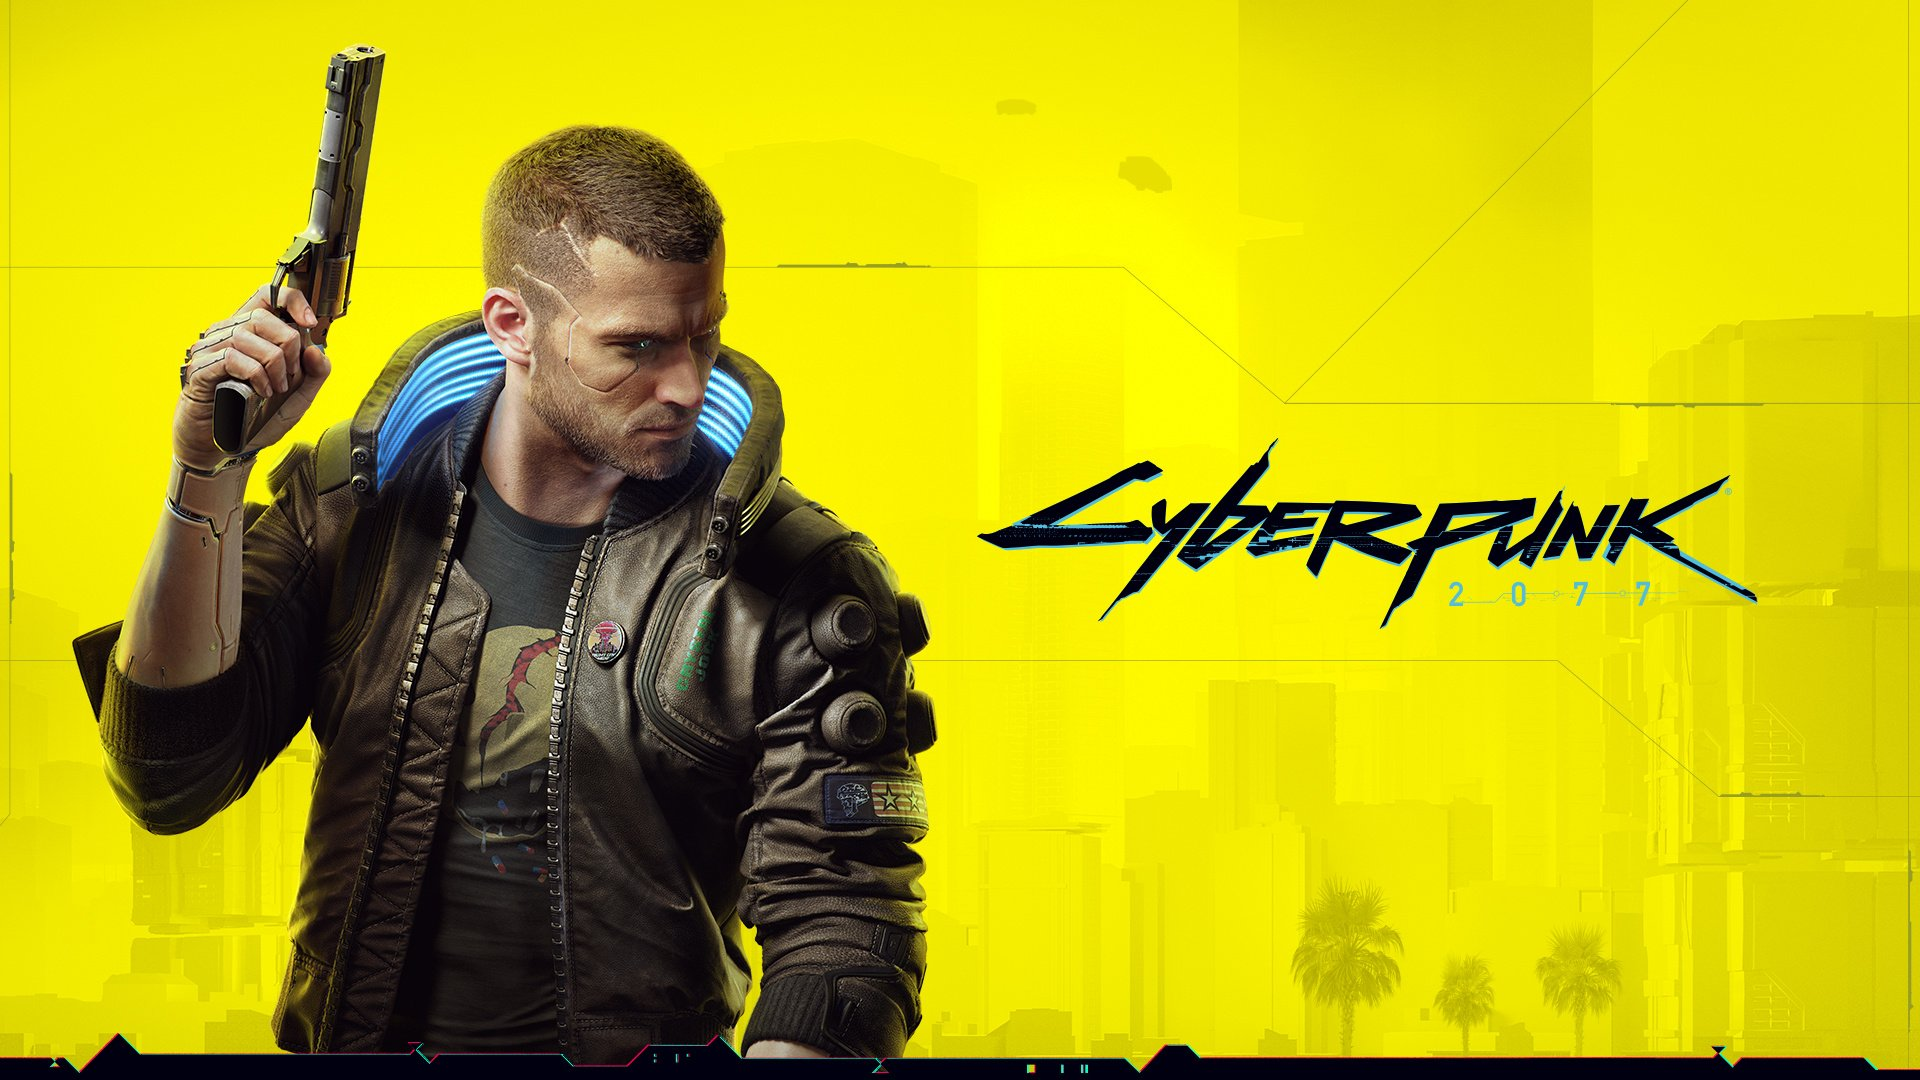 Yes, Cyberpunk 2077 Has a Reversible Cover for Male or Female V